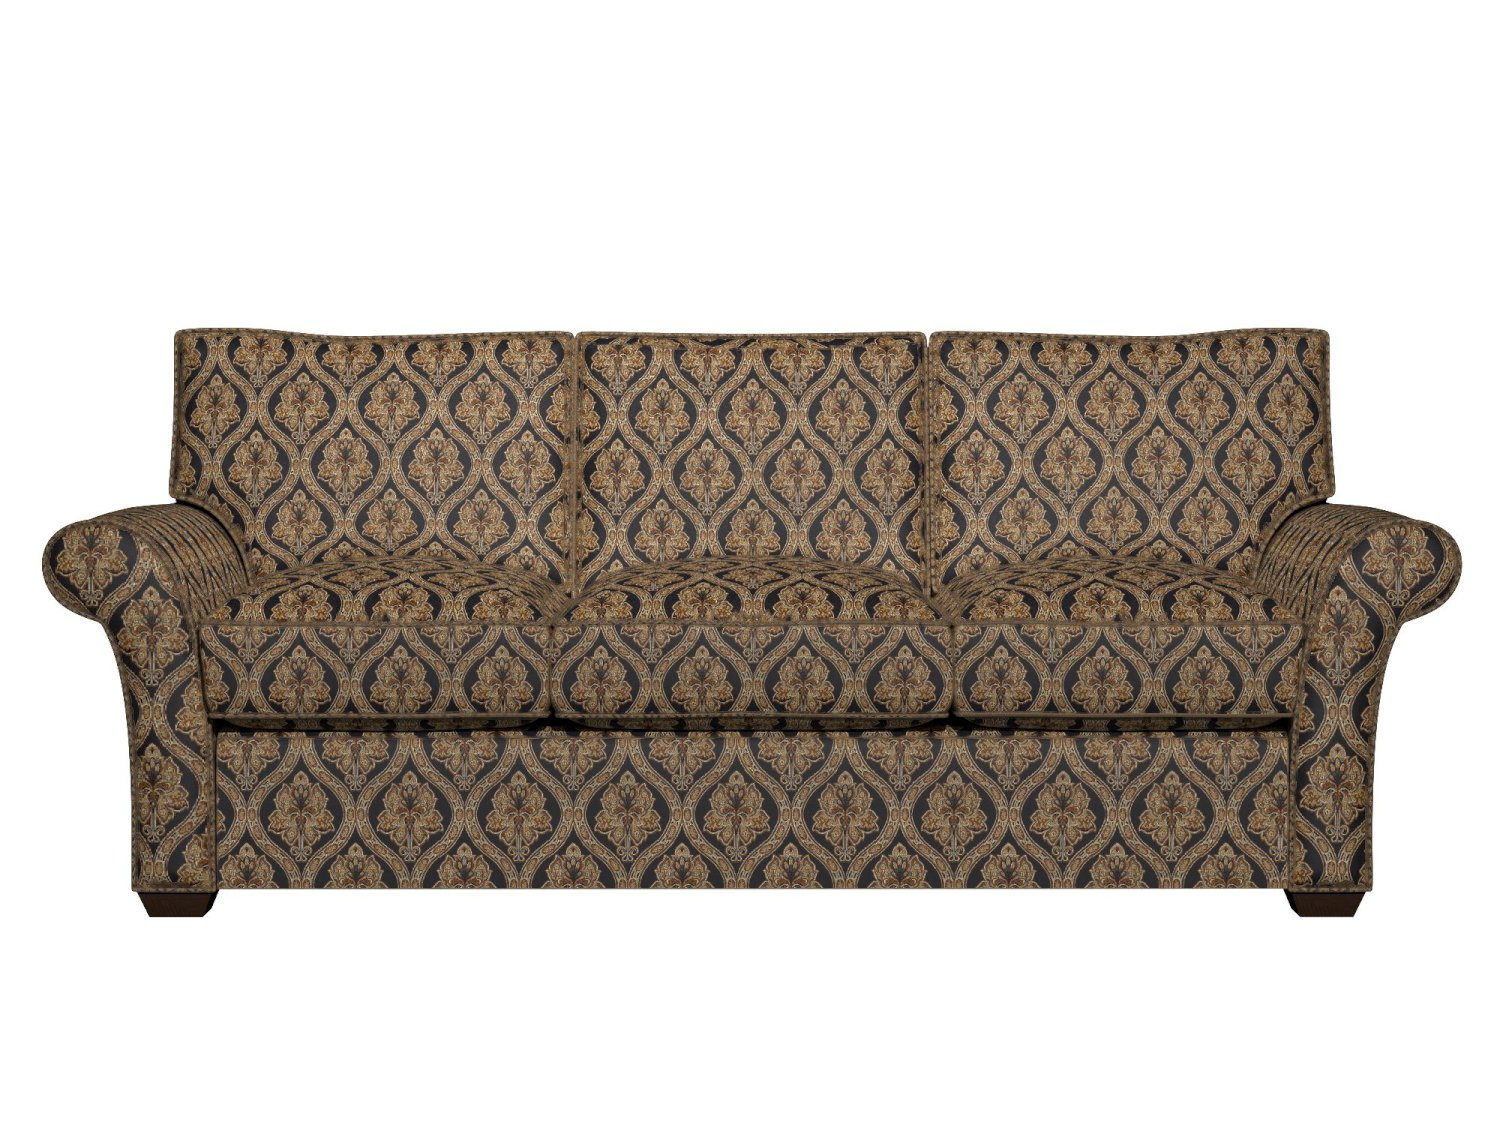 brocade sofa fabric loveseat recliner a0016c midnight gold ivory traditional upholstery